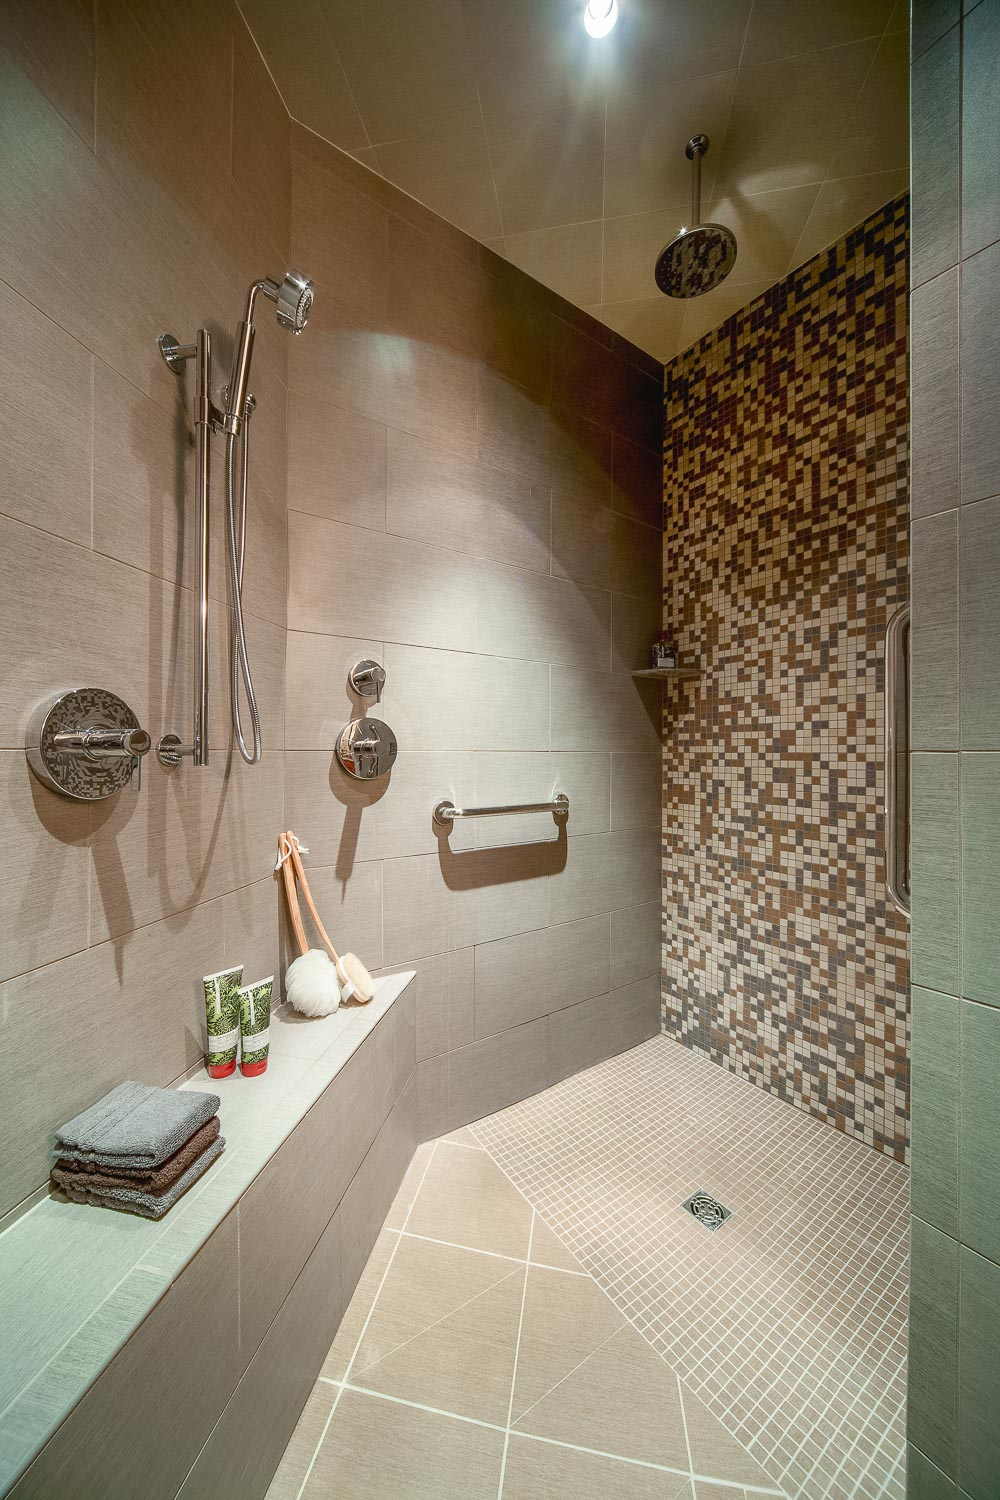 - This level entry walk-in shower was created in a new home.